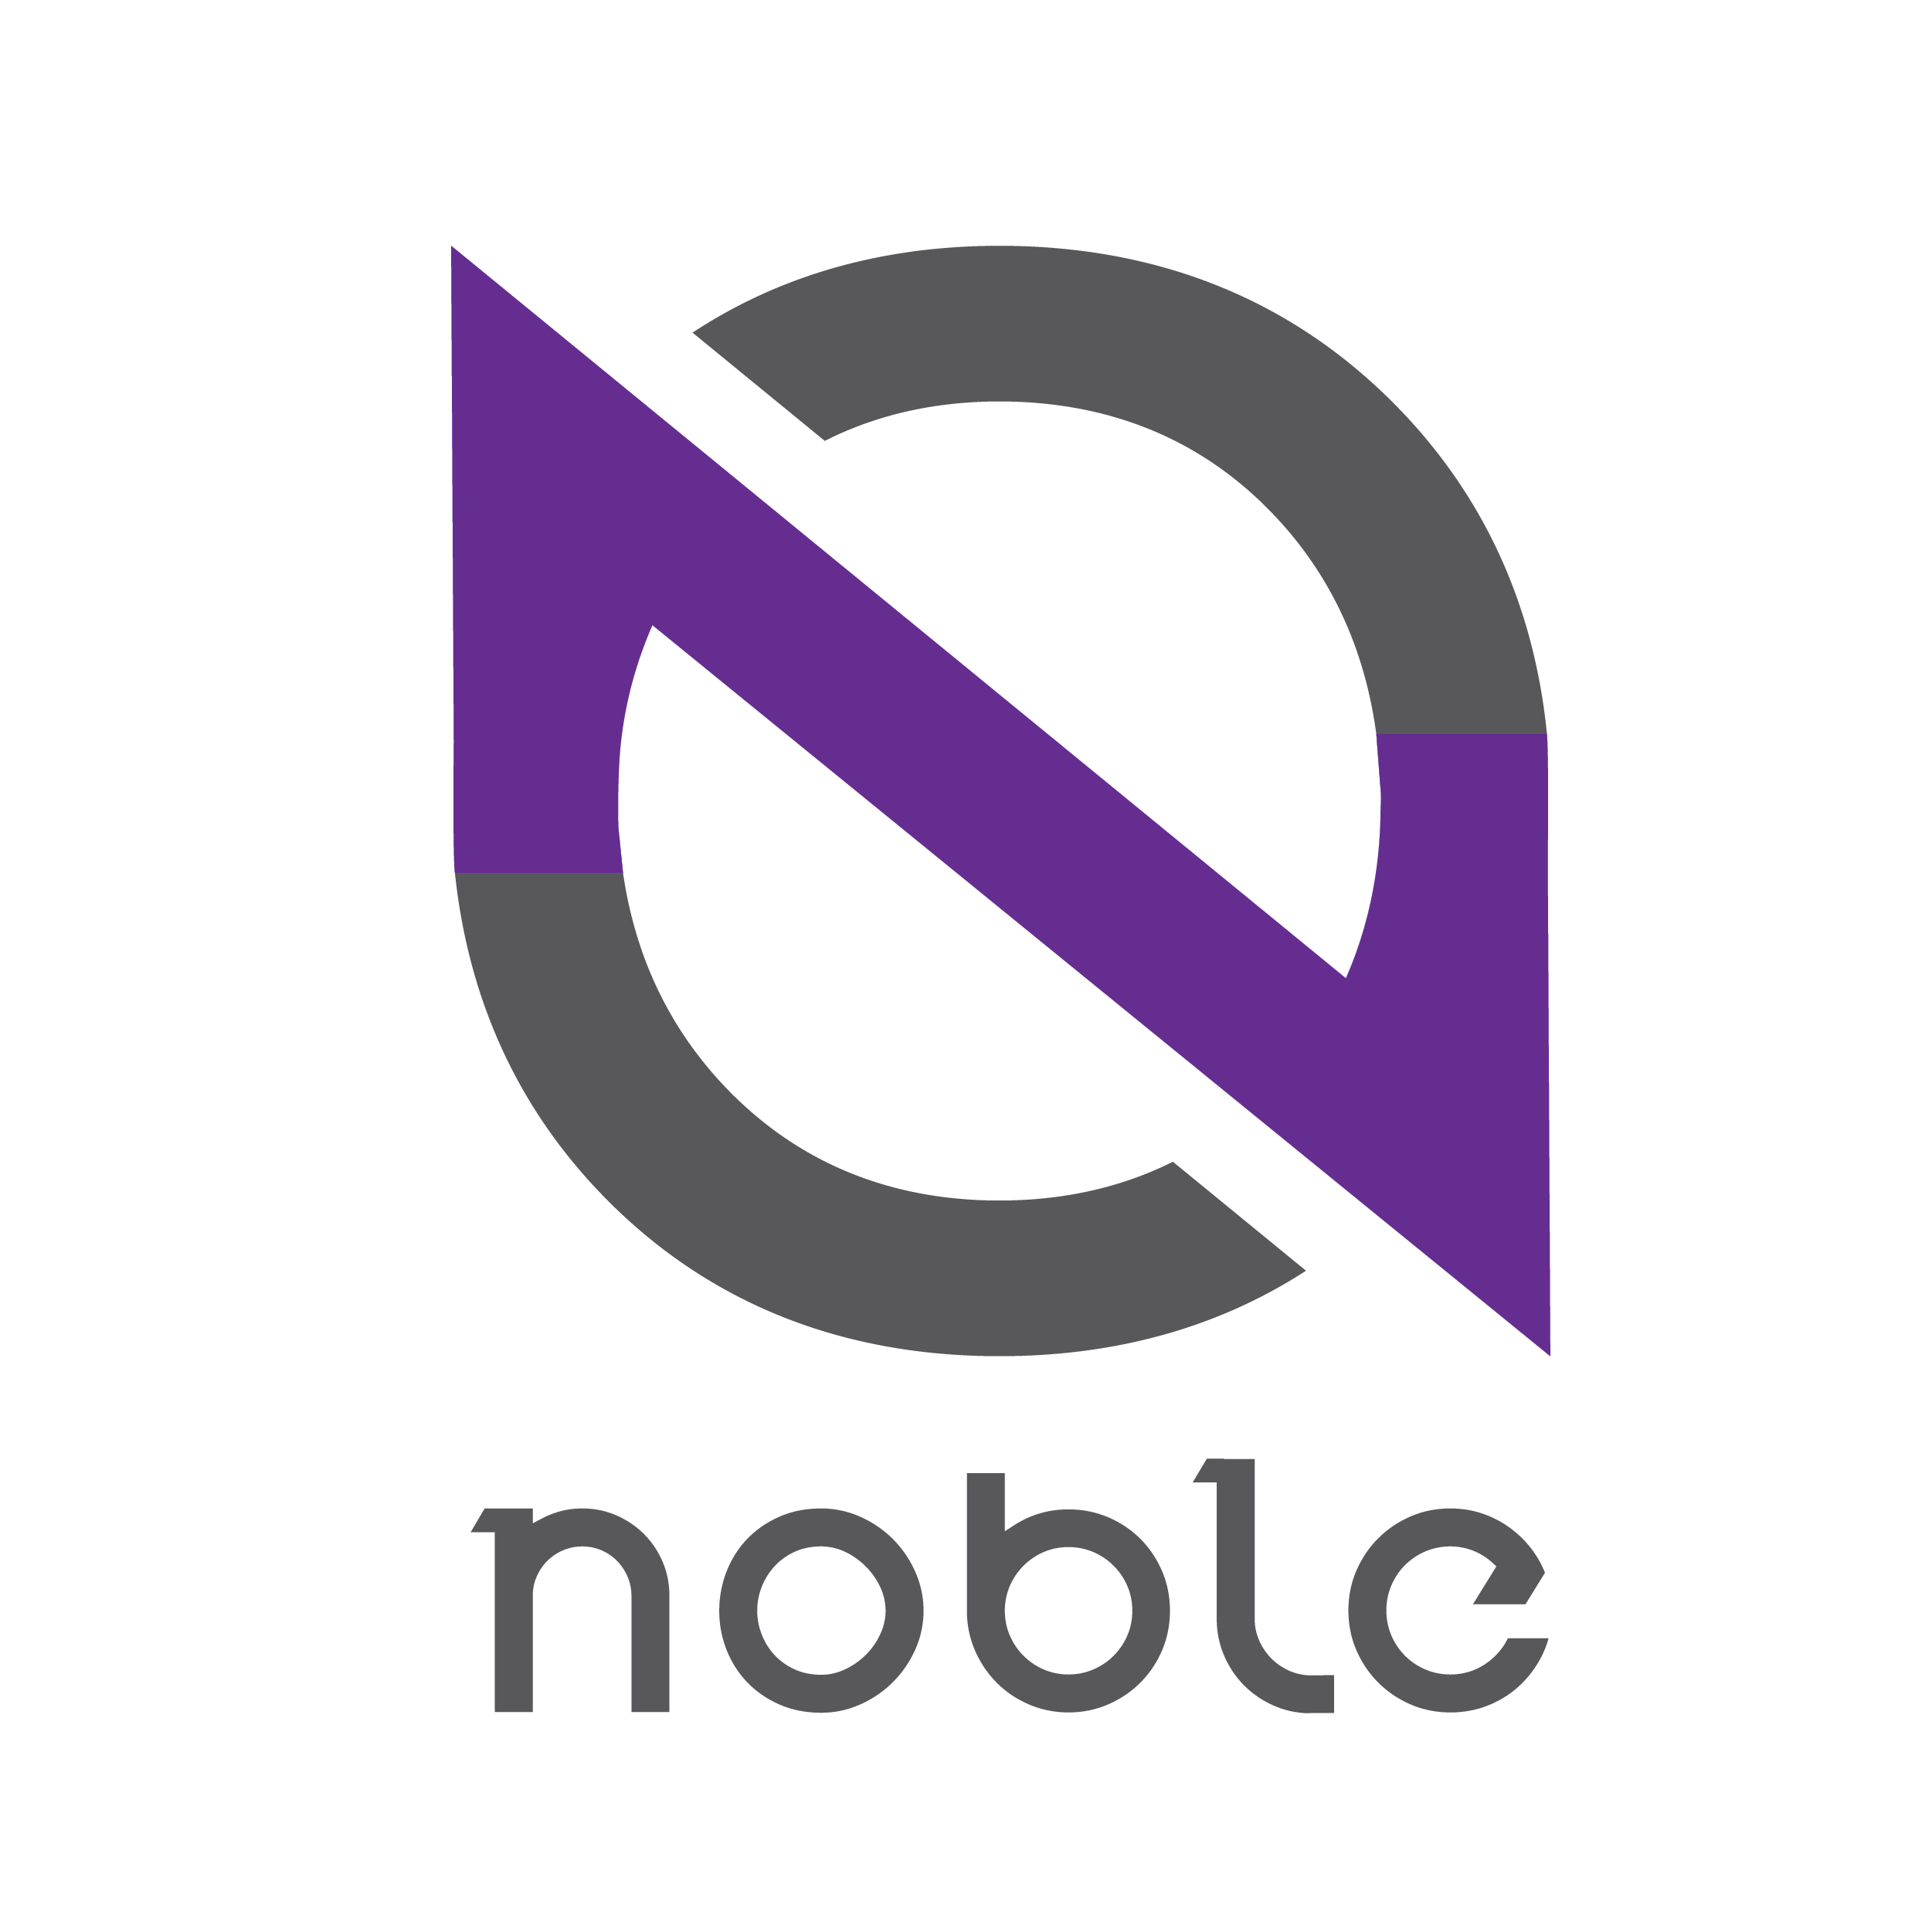 Noble FC